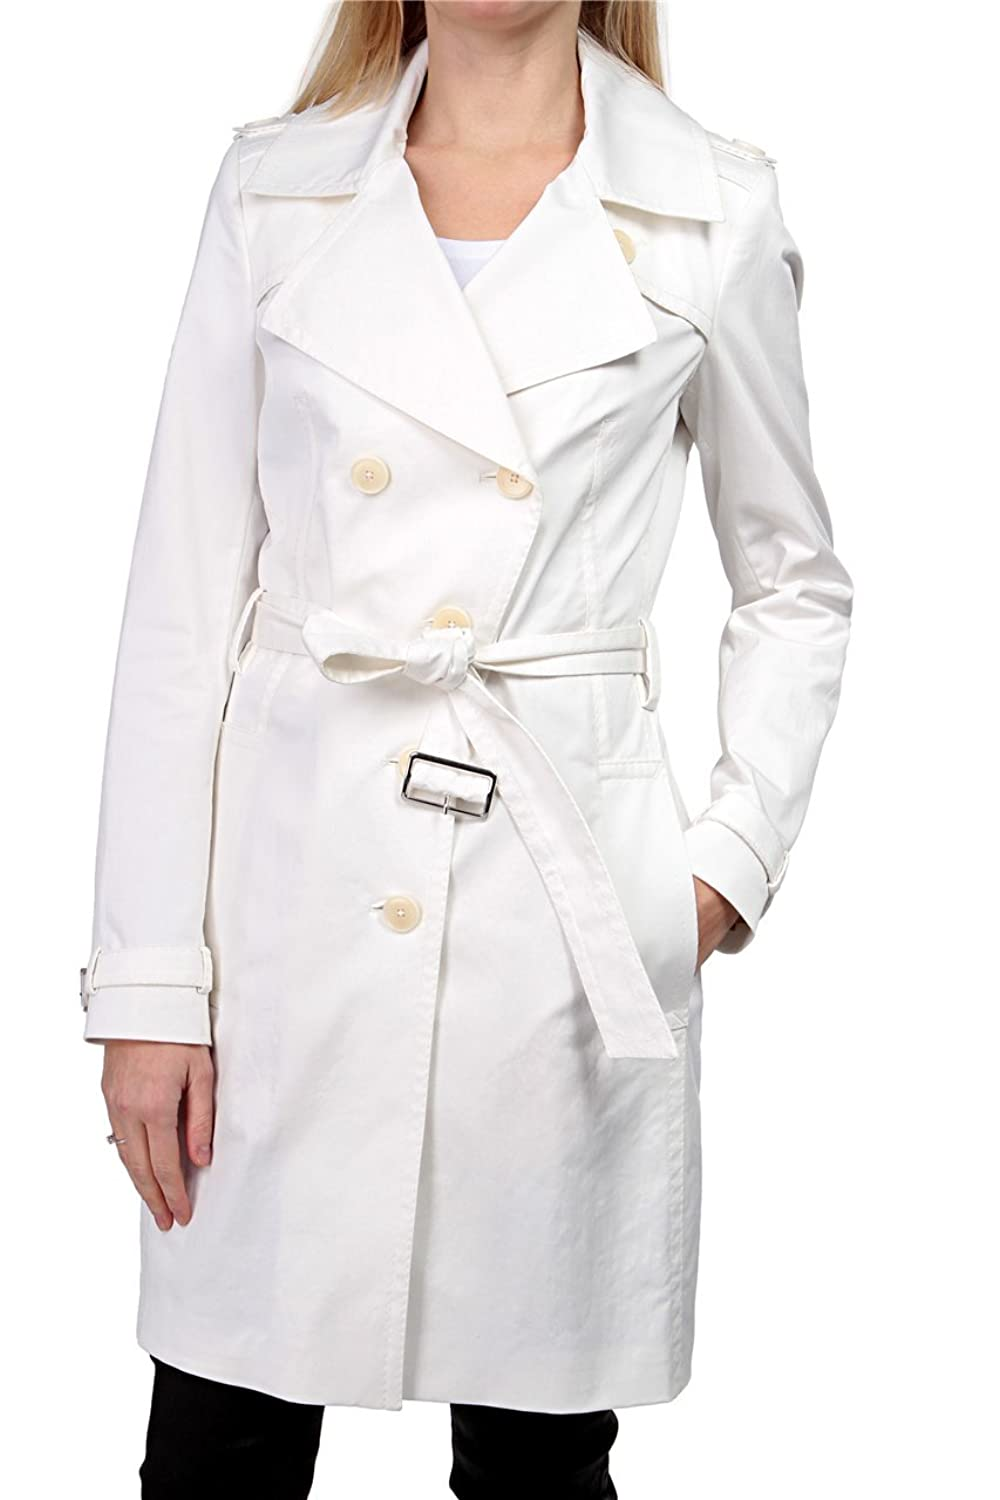 Drykorn Damen Jacke Trenchcoat DISS, Farbe: Weiss